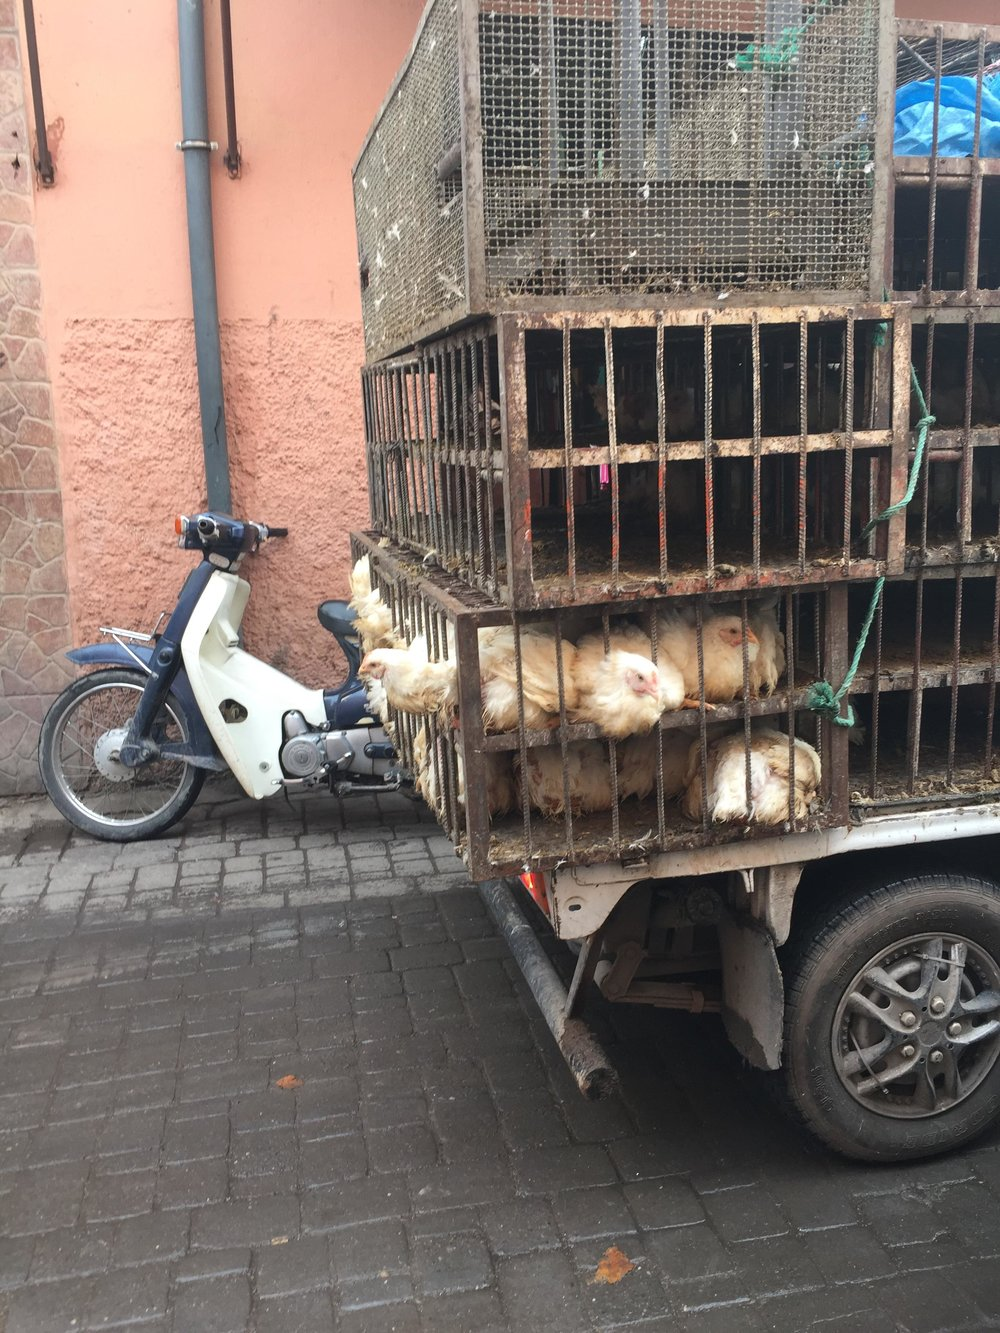 Chickens going to market in Marrakesh, Morocco